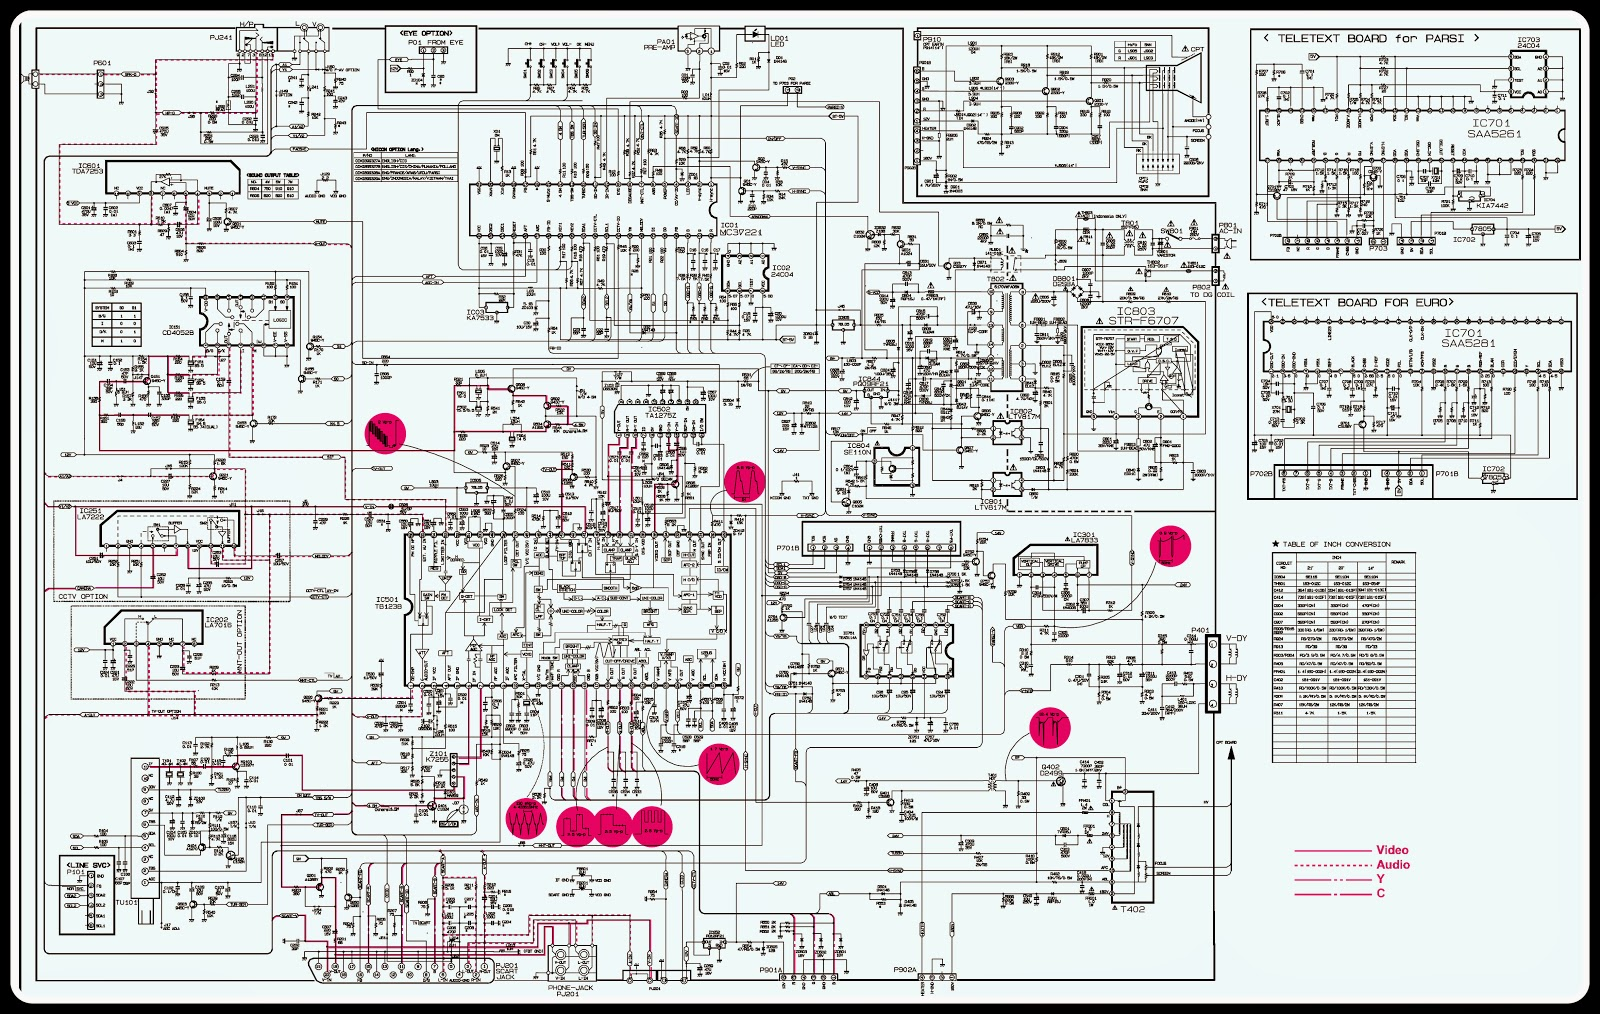 lg%2Bcrt%2Btv.bmp lg cf20f schematic (circuit diagram) 20 inch crt tv electro help lg microwave wiring diagram at gsmportal.co